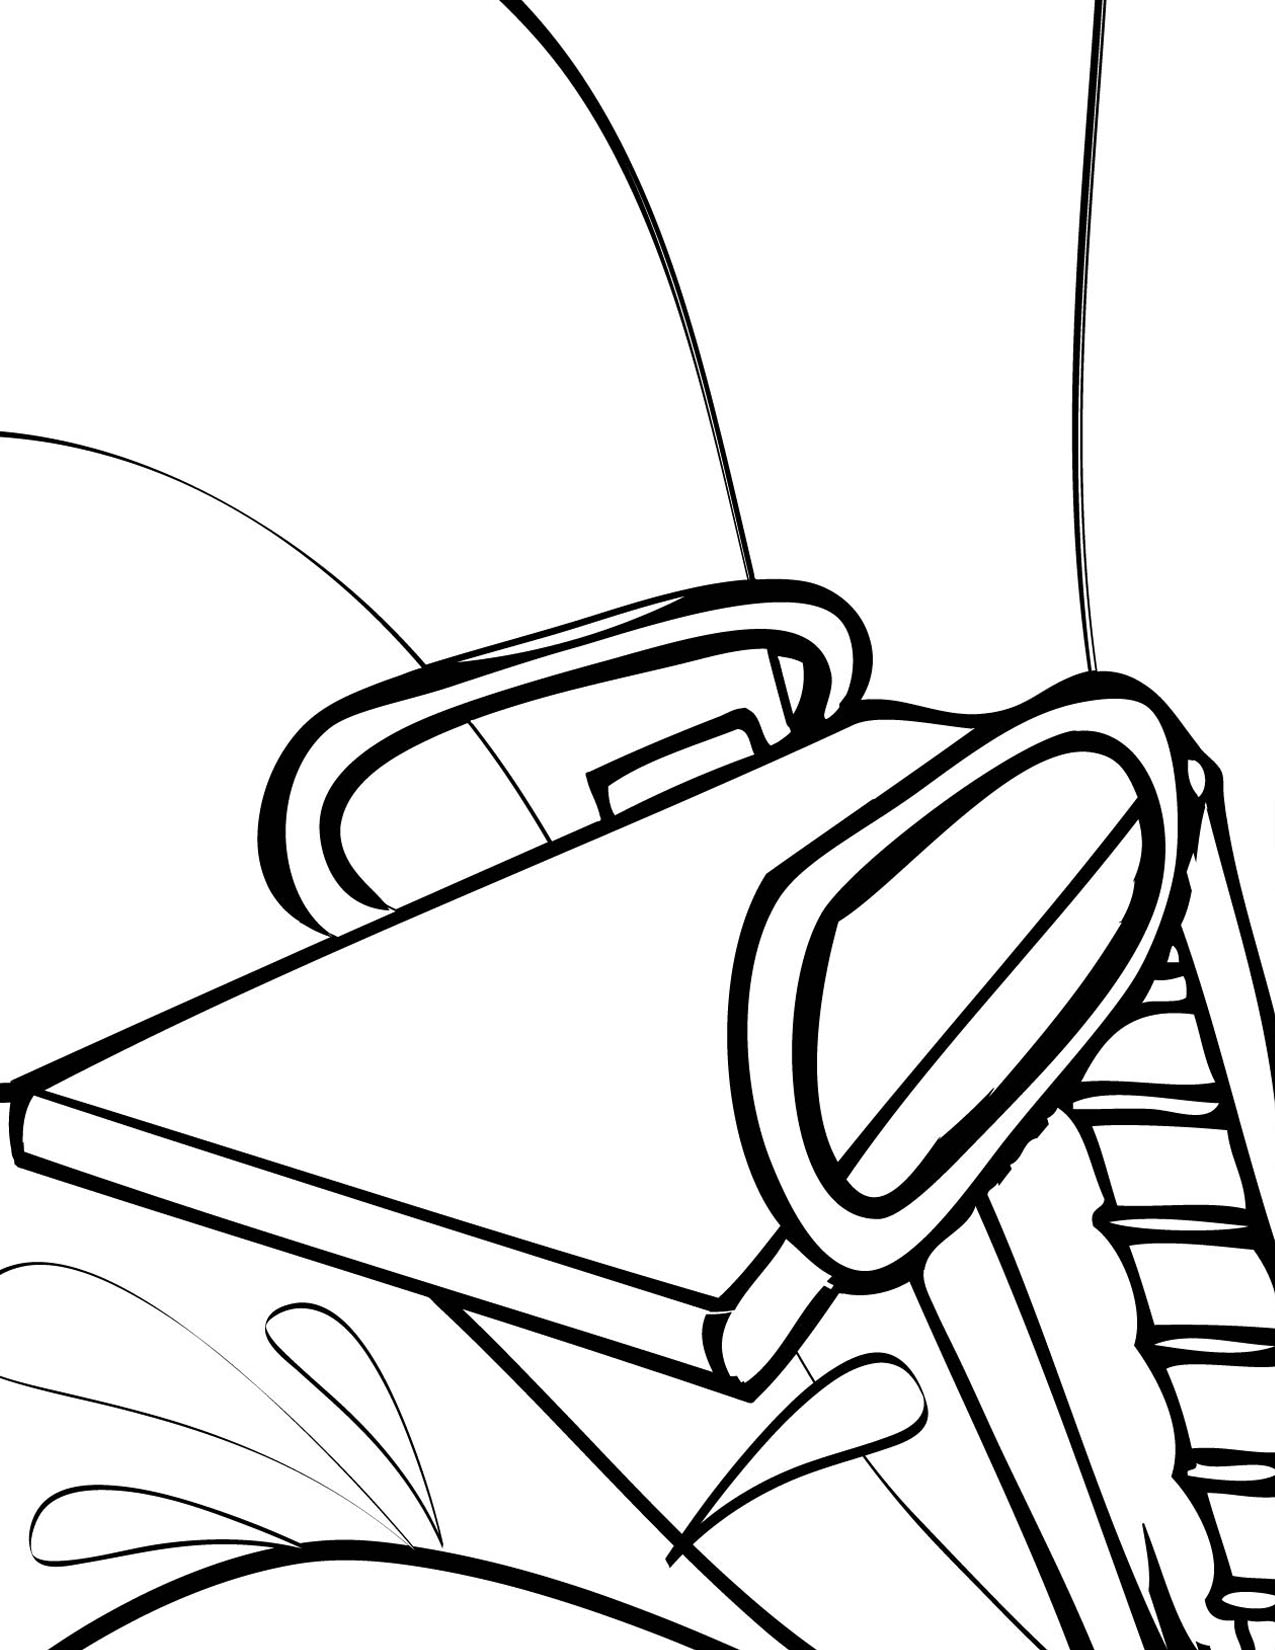 1275x1650 Board Snake Coloring Page. Thinking Girl Board Game Coloring Page